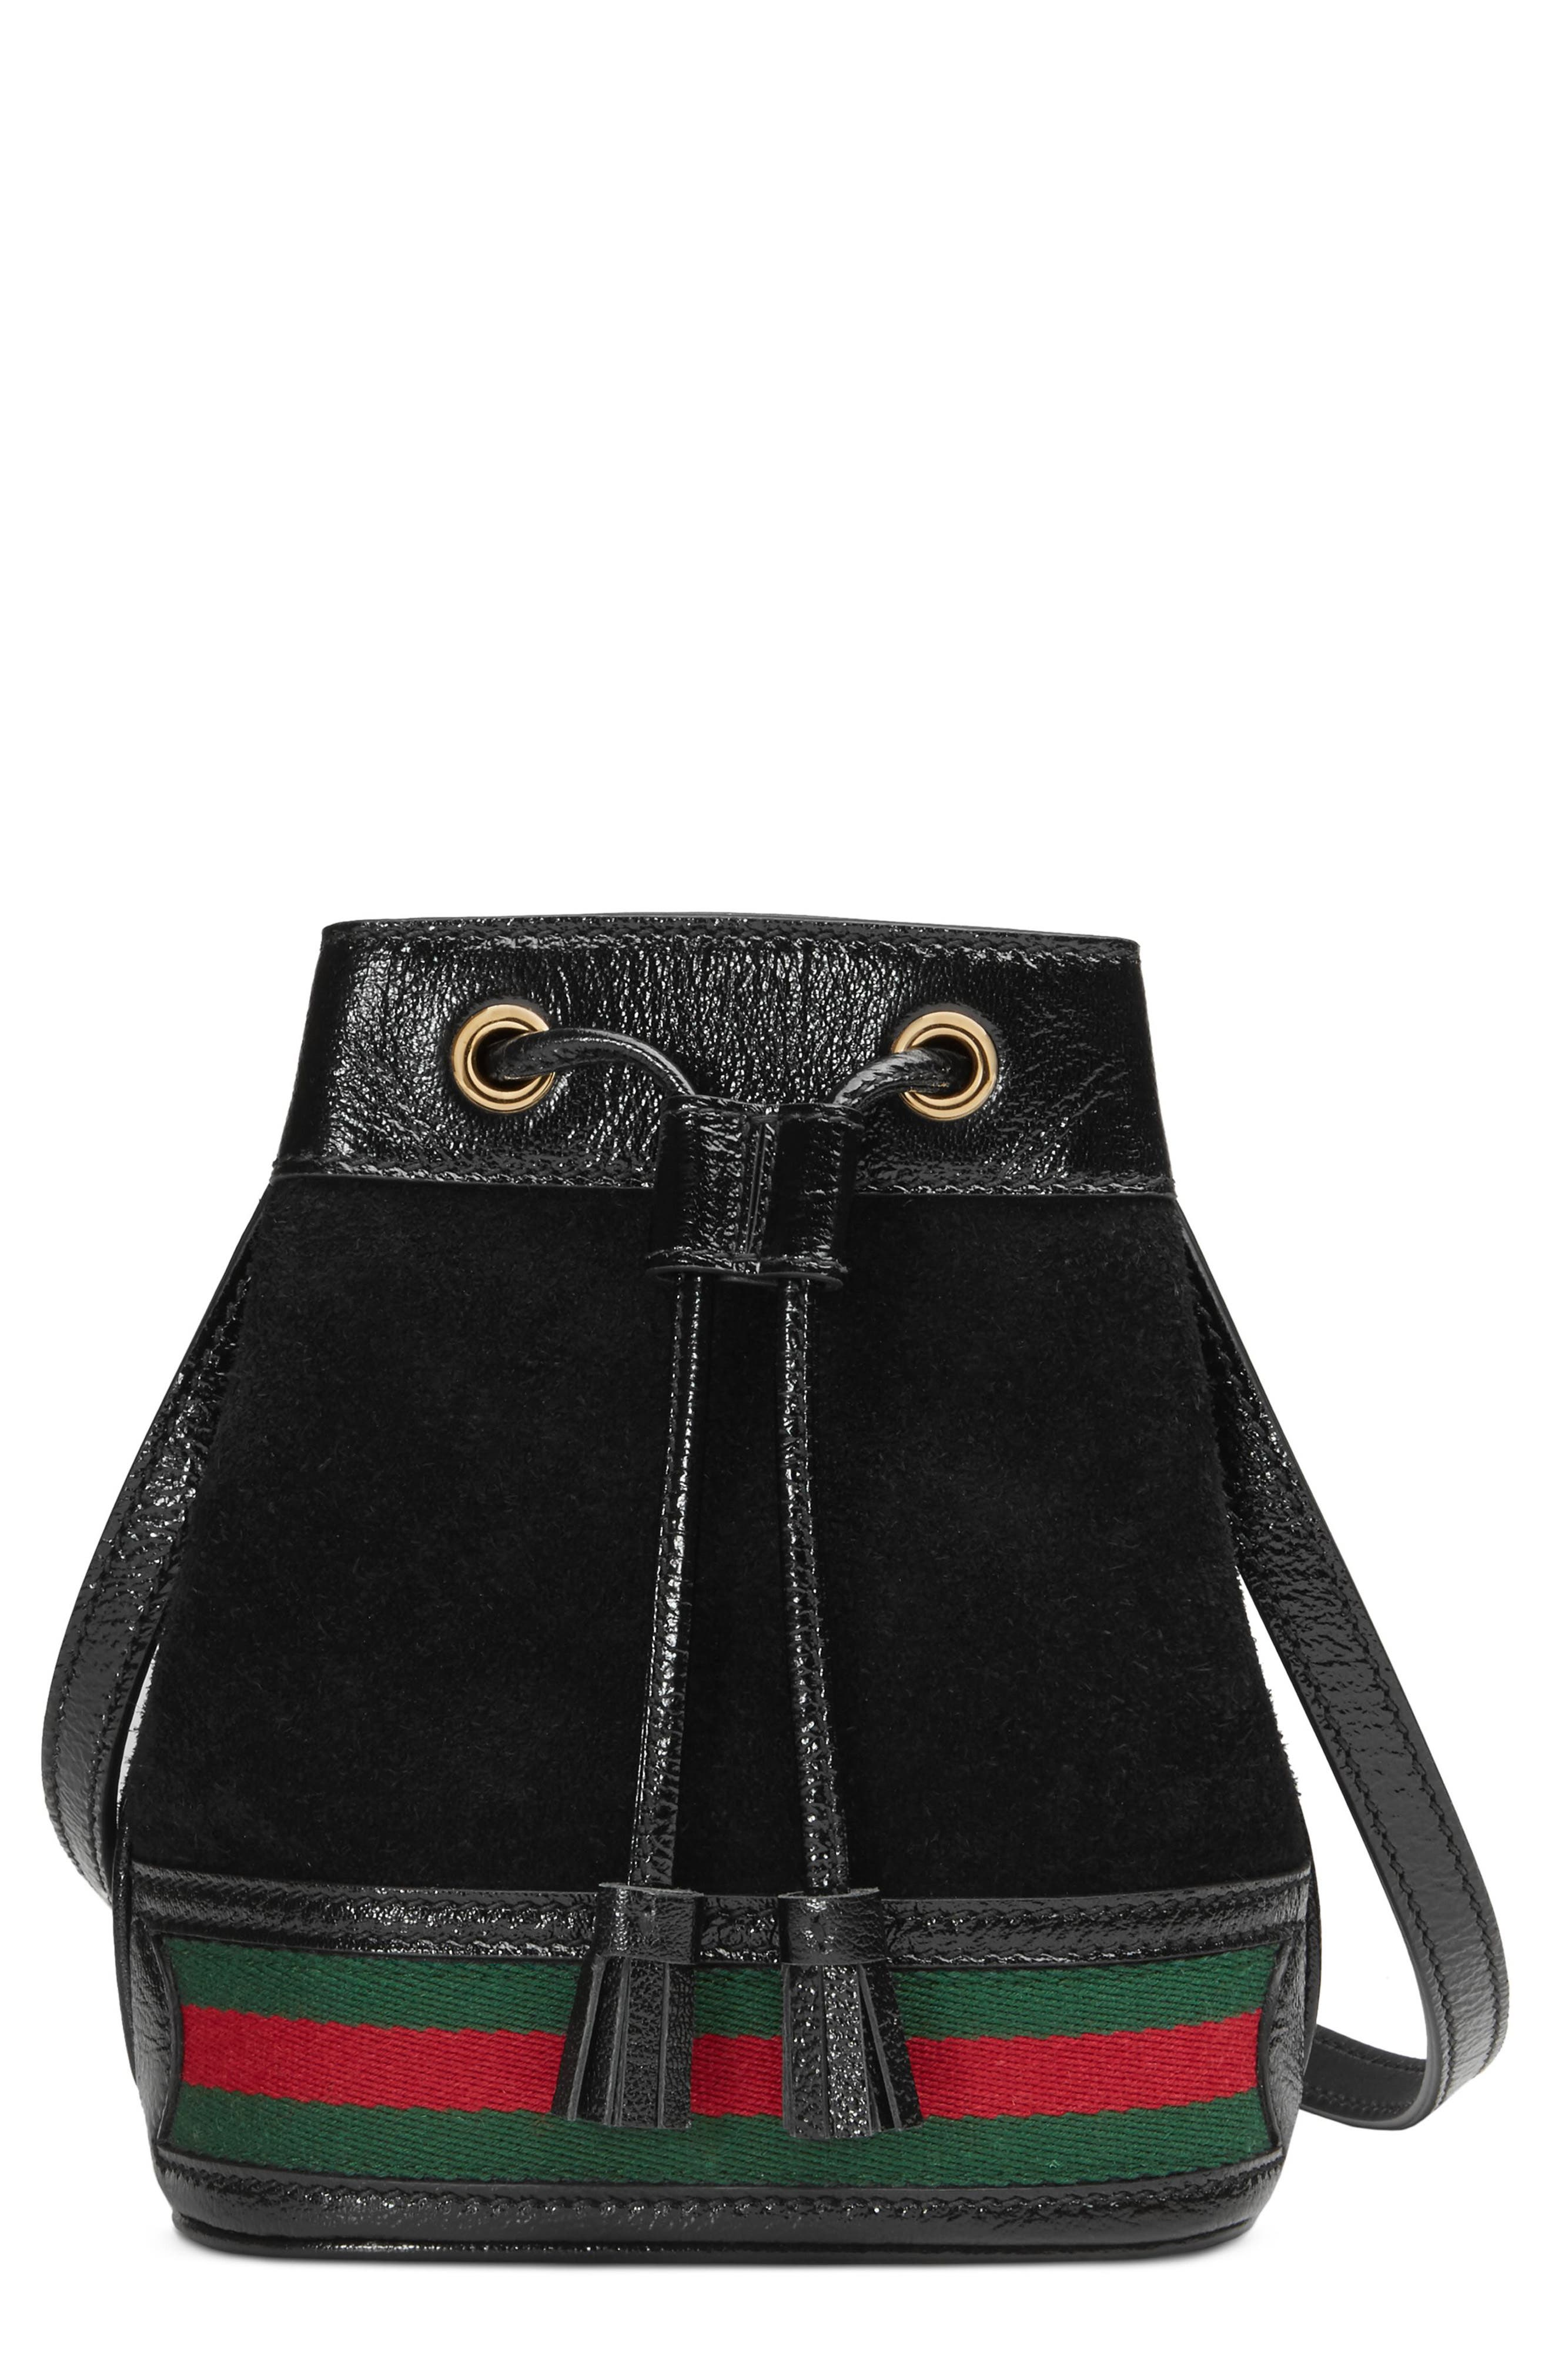 Mini Ophidia Suede & Leather Bucket Bag,                             Main thumbnail 1, color,                             NERO/ VERT/ RED